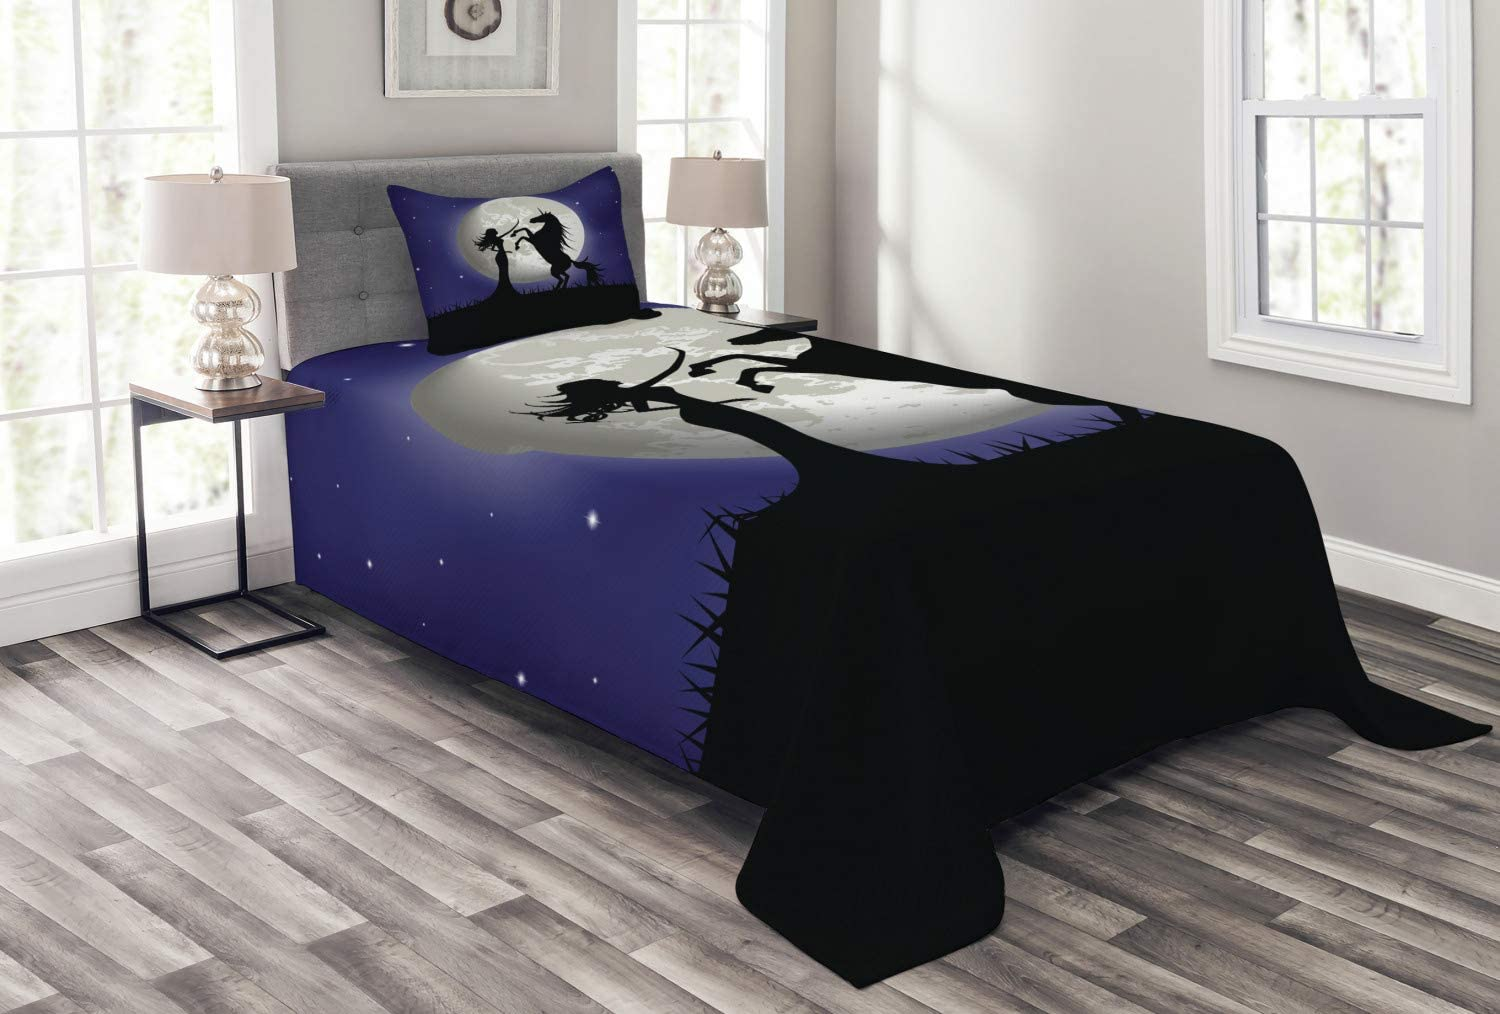 Ambesonne Horse Bedspread Silhouette and Long Ranking TOP15 of Rampant Purchase